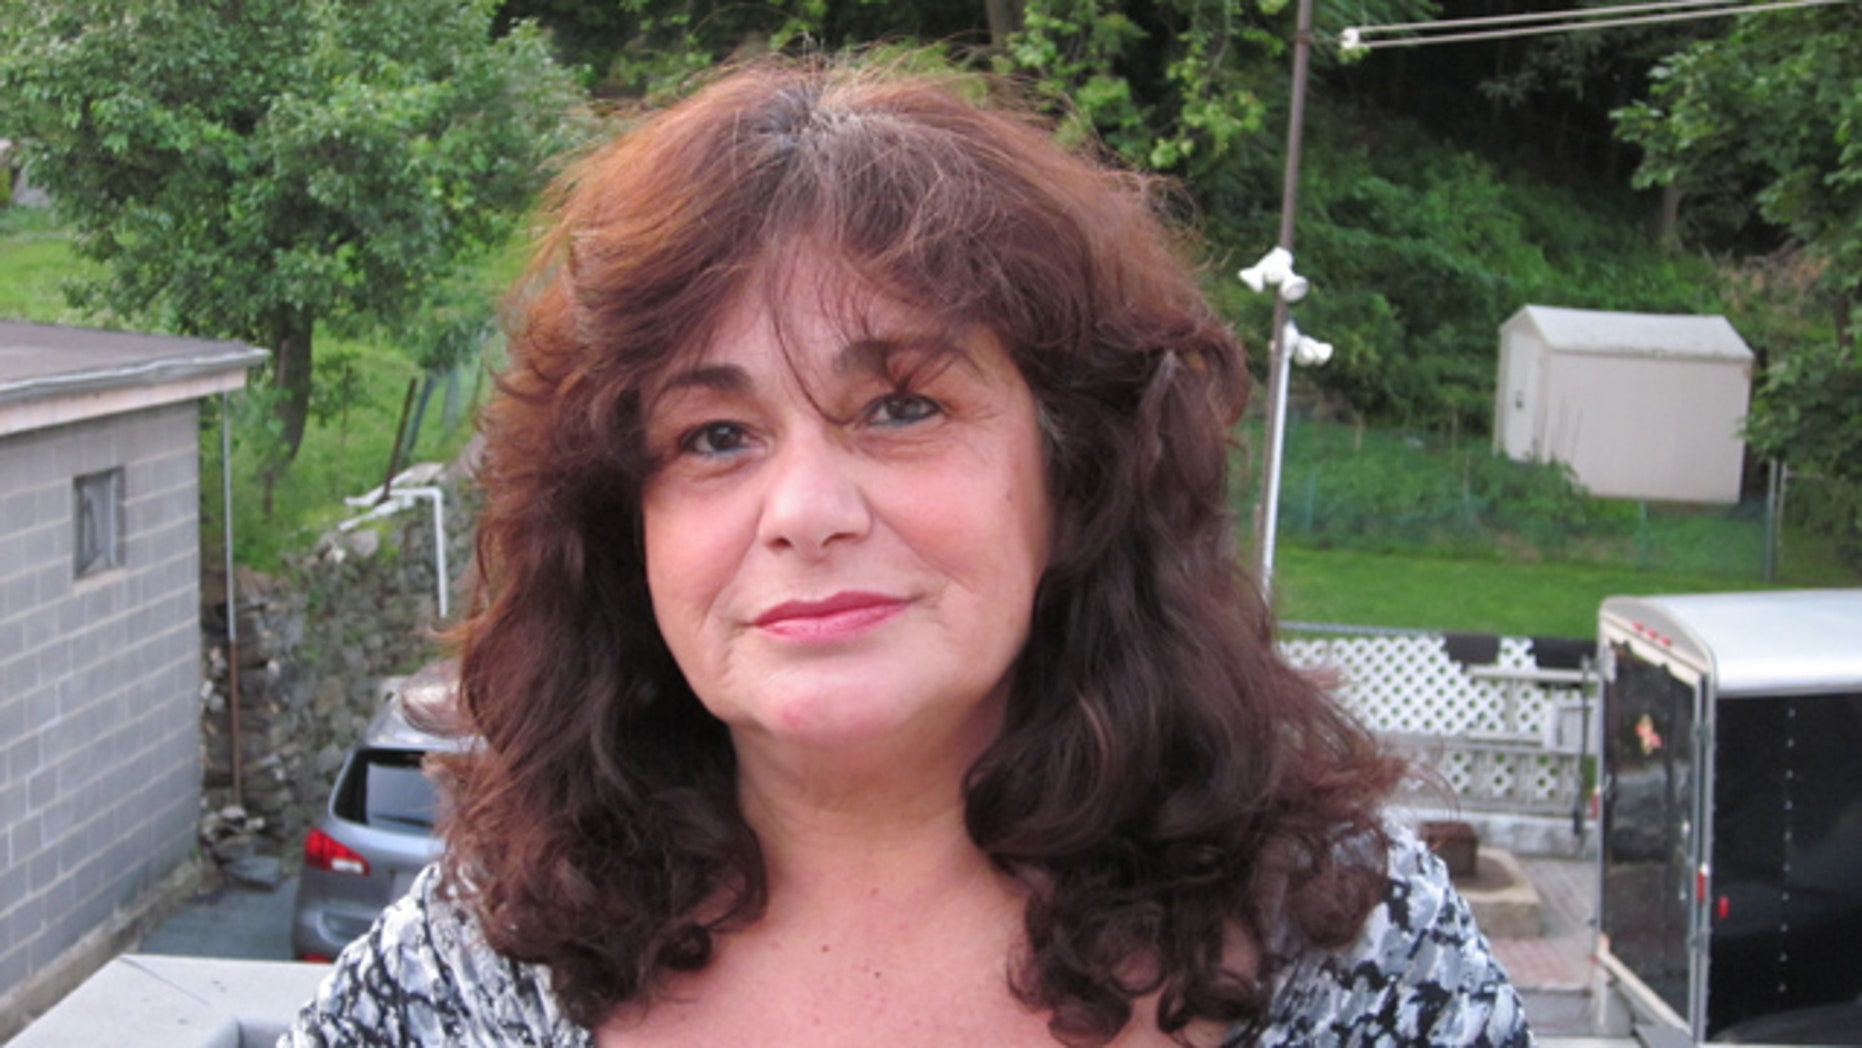 June 15: Maria Renda was released from a New Jersey jail, where she was held for over a month because of a decade-old misdemeanor drug conviction.